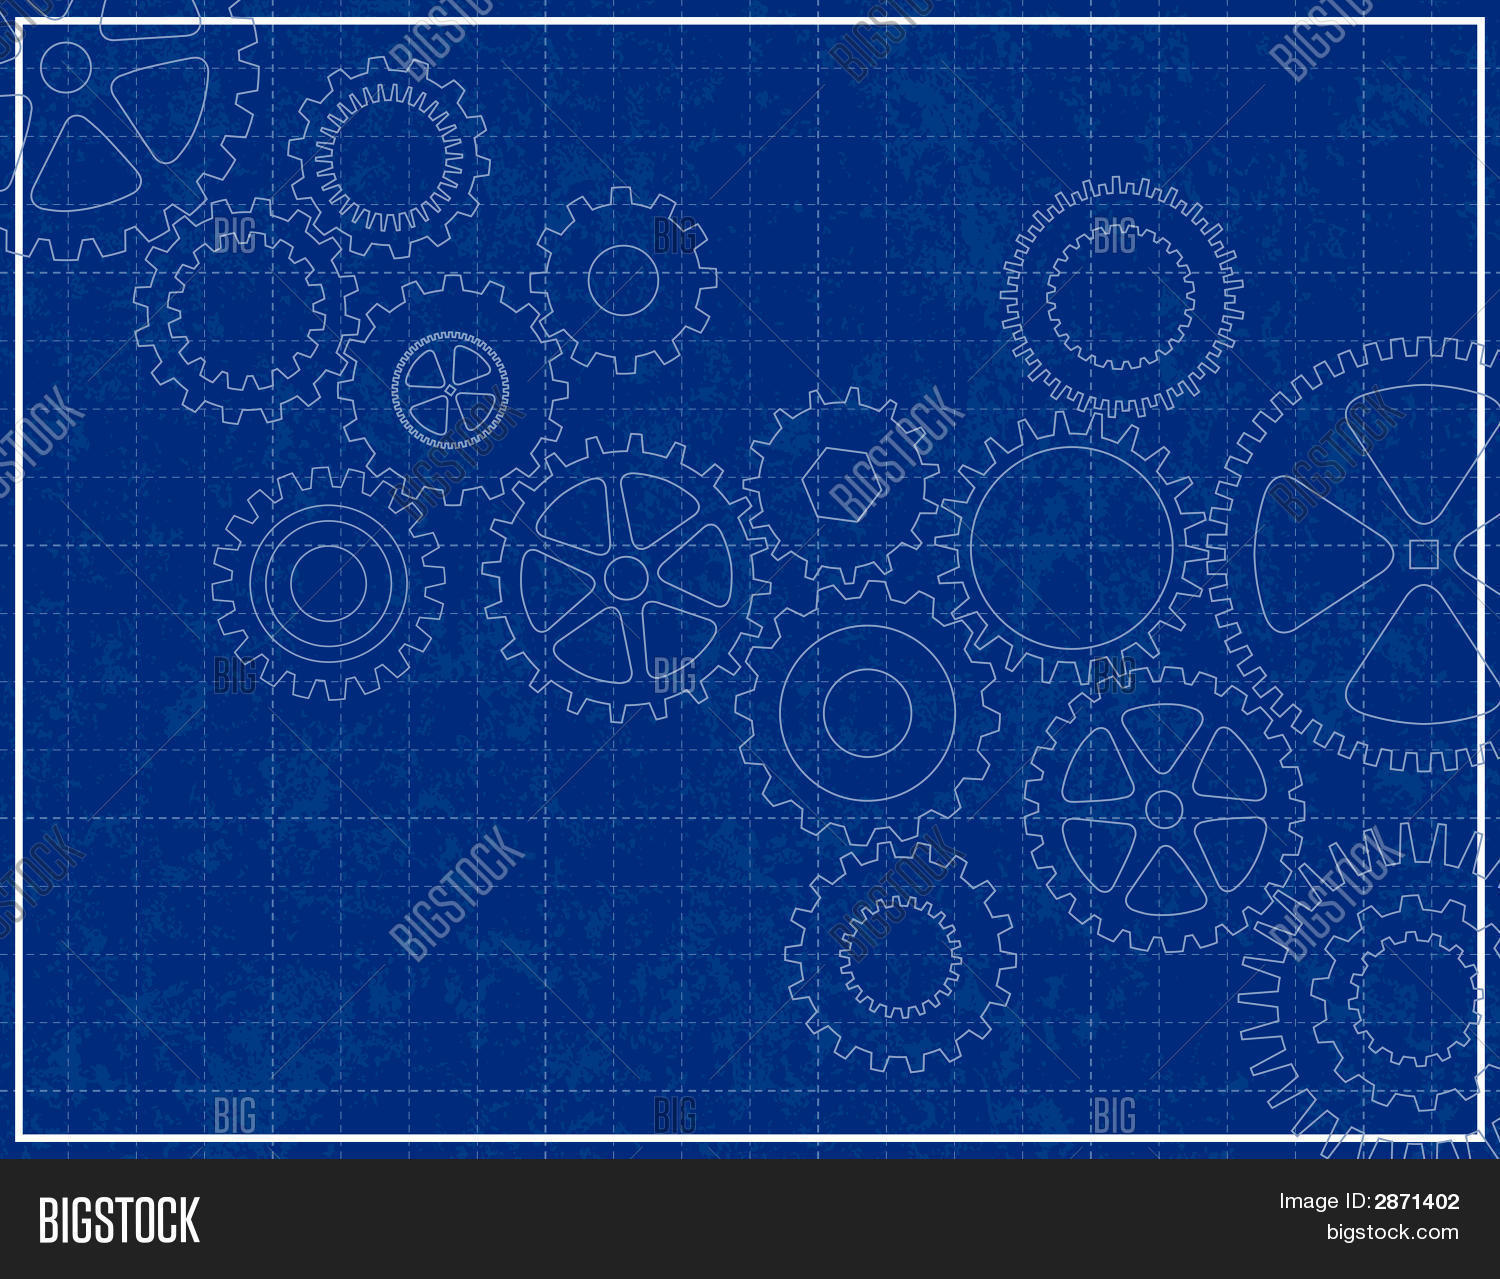 Blueprint background cogs vector photo bigstock blueprint background with cogs malvernweather Gallery